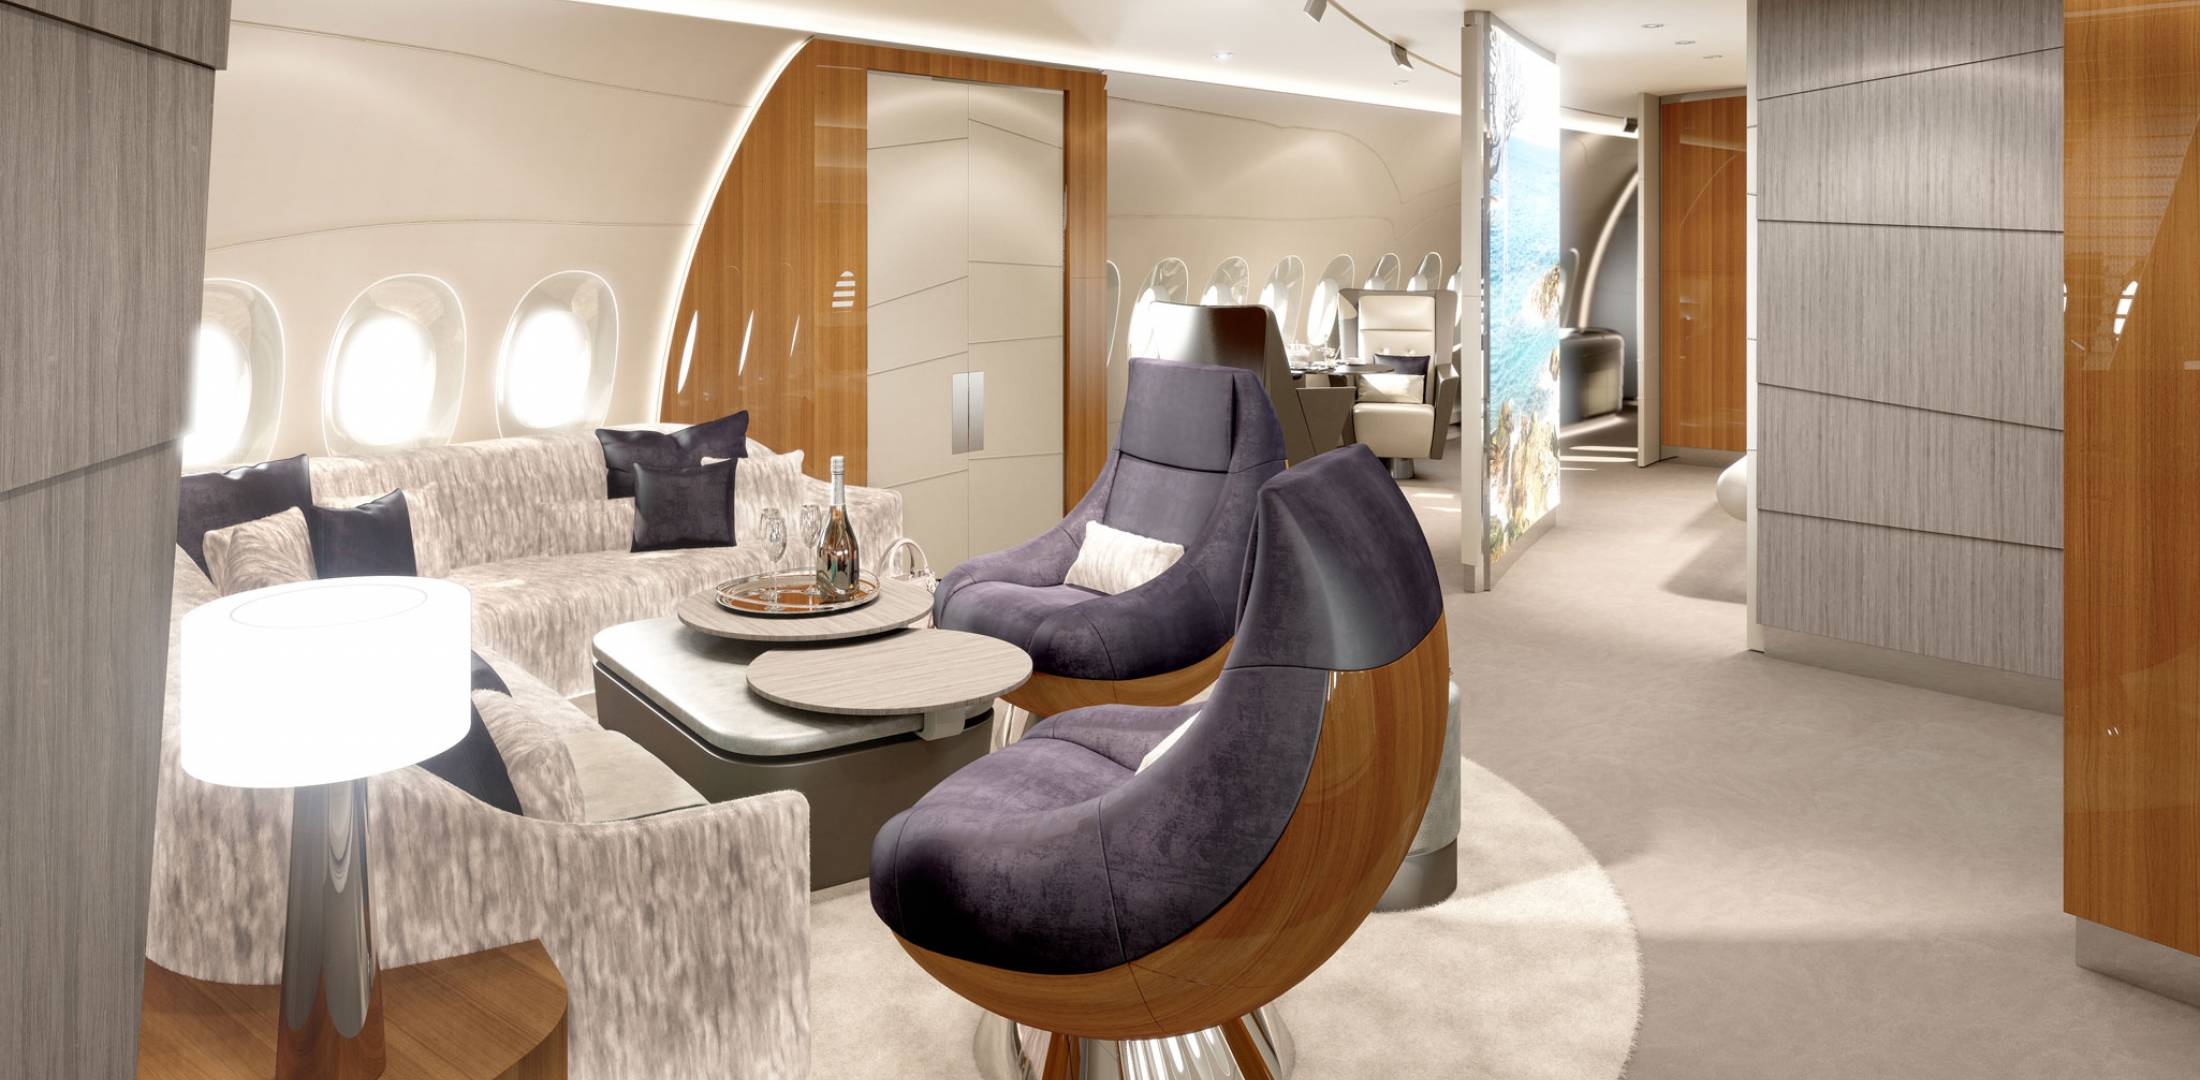 lufthansa technik intros vip interior for a350 business aviation news aviation international news. Black Bedroom Furniture Sets. Home Design Ideas